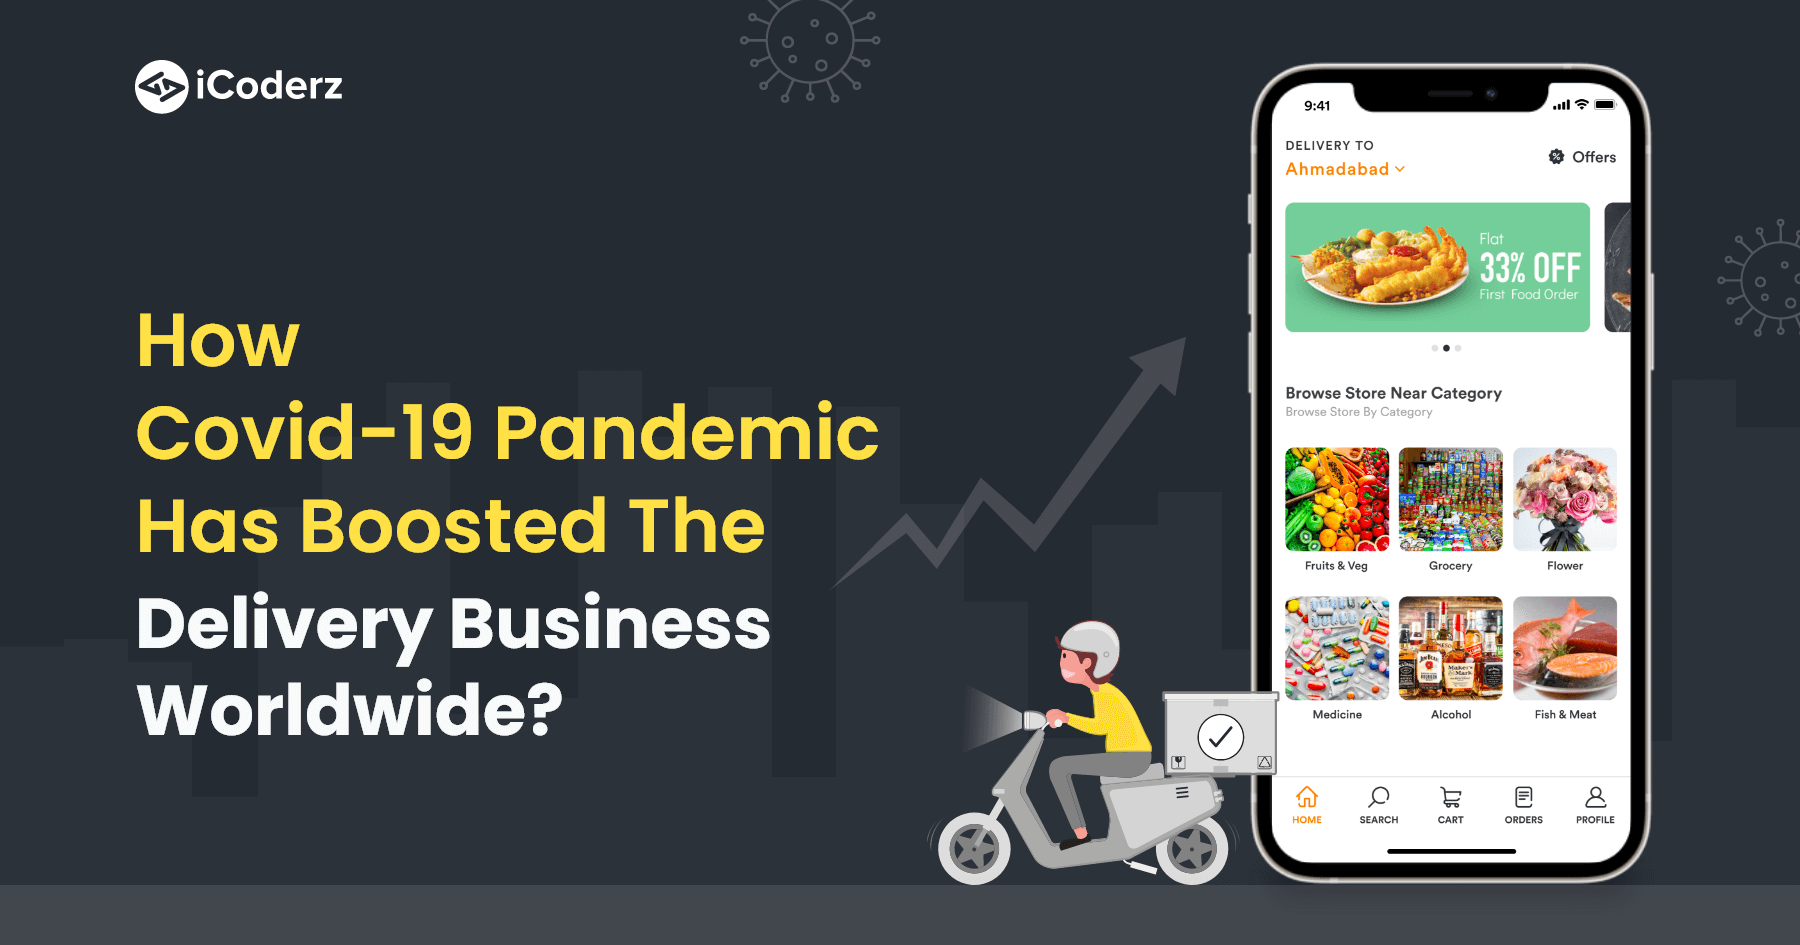 How Has The Coronavirus Pandemic Boosted The Delivery Business Worldwide?